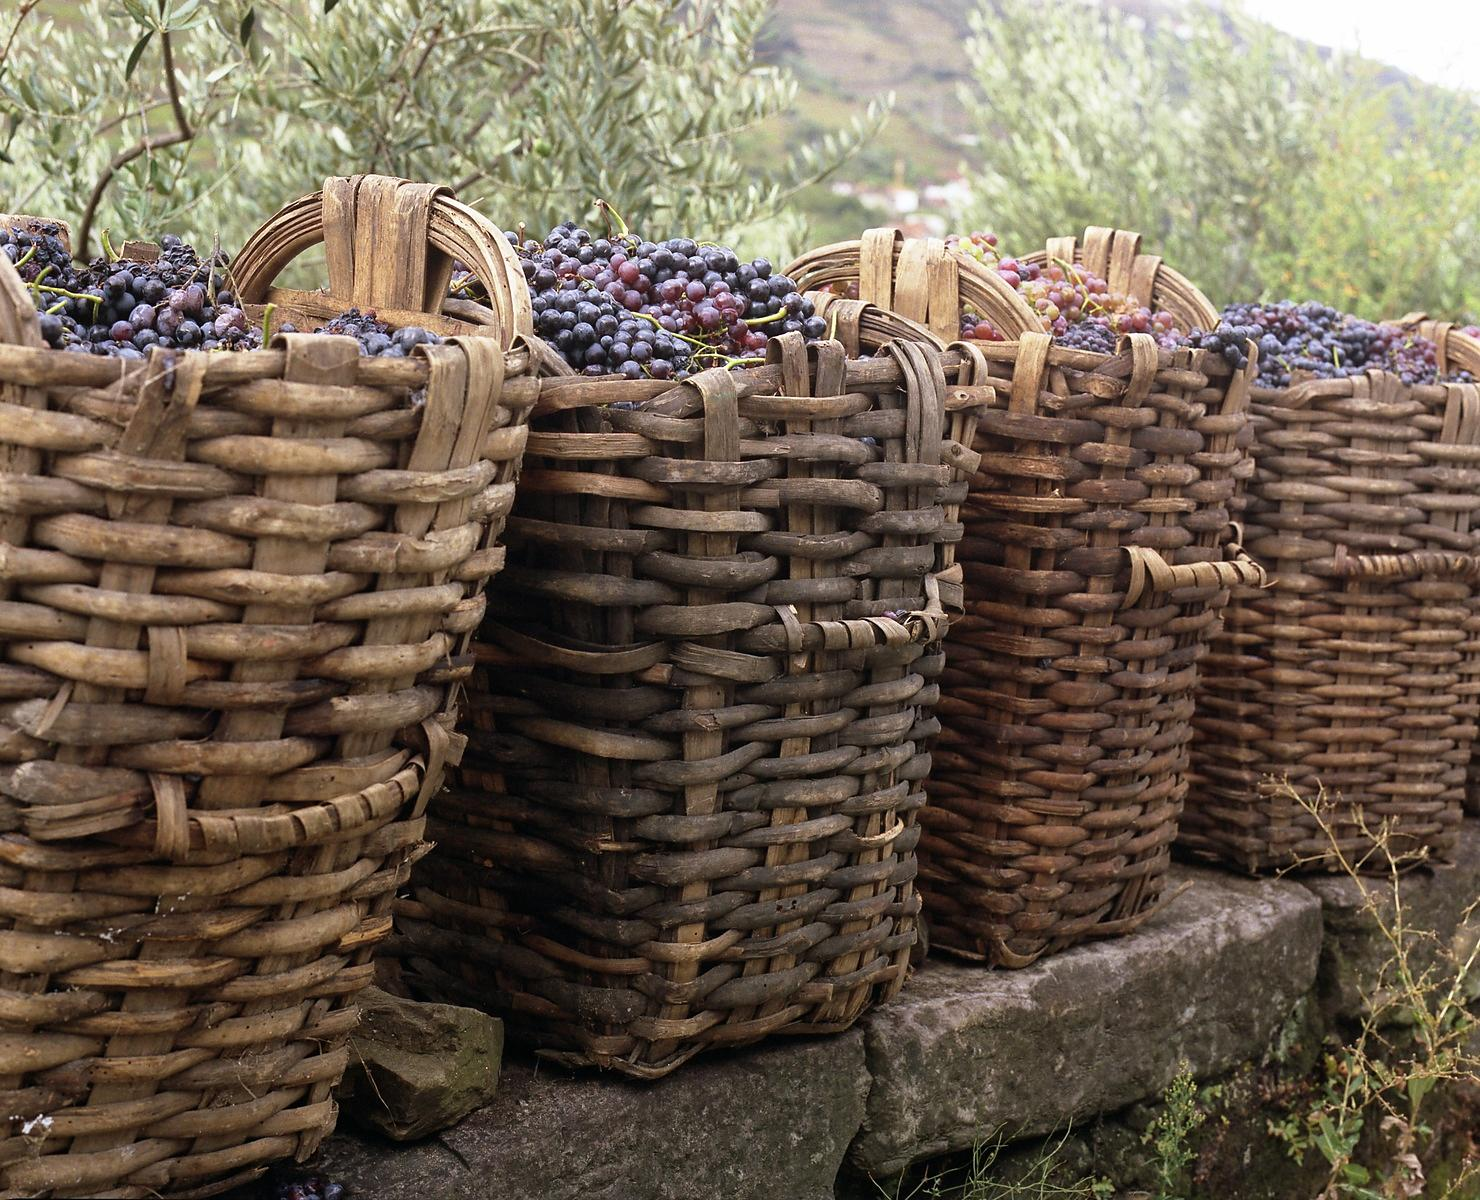 grapes_in_baskets_1